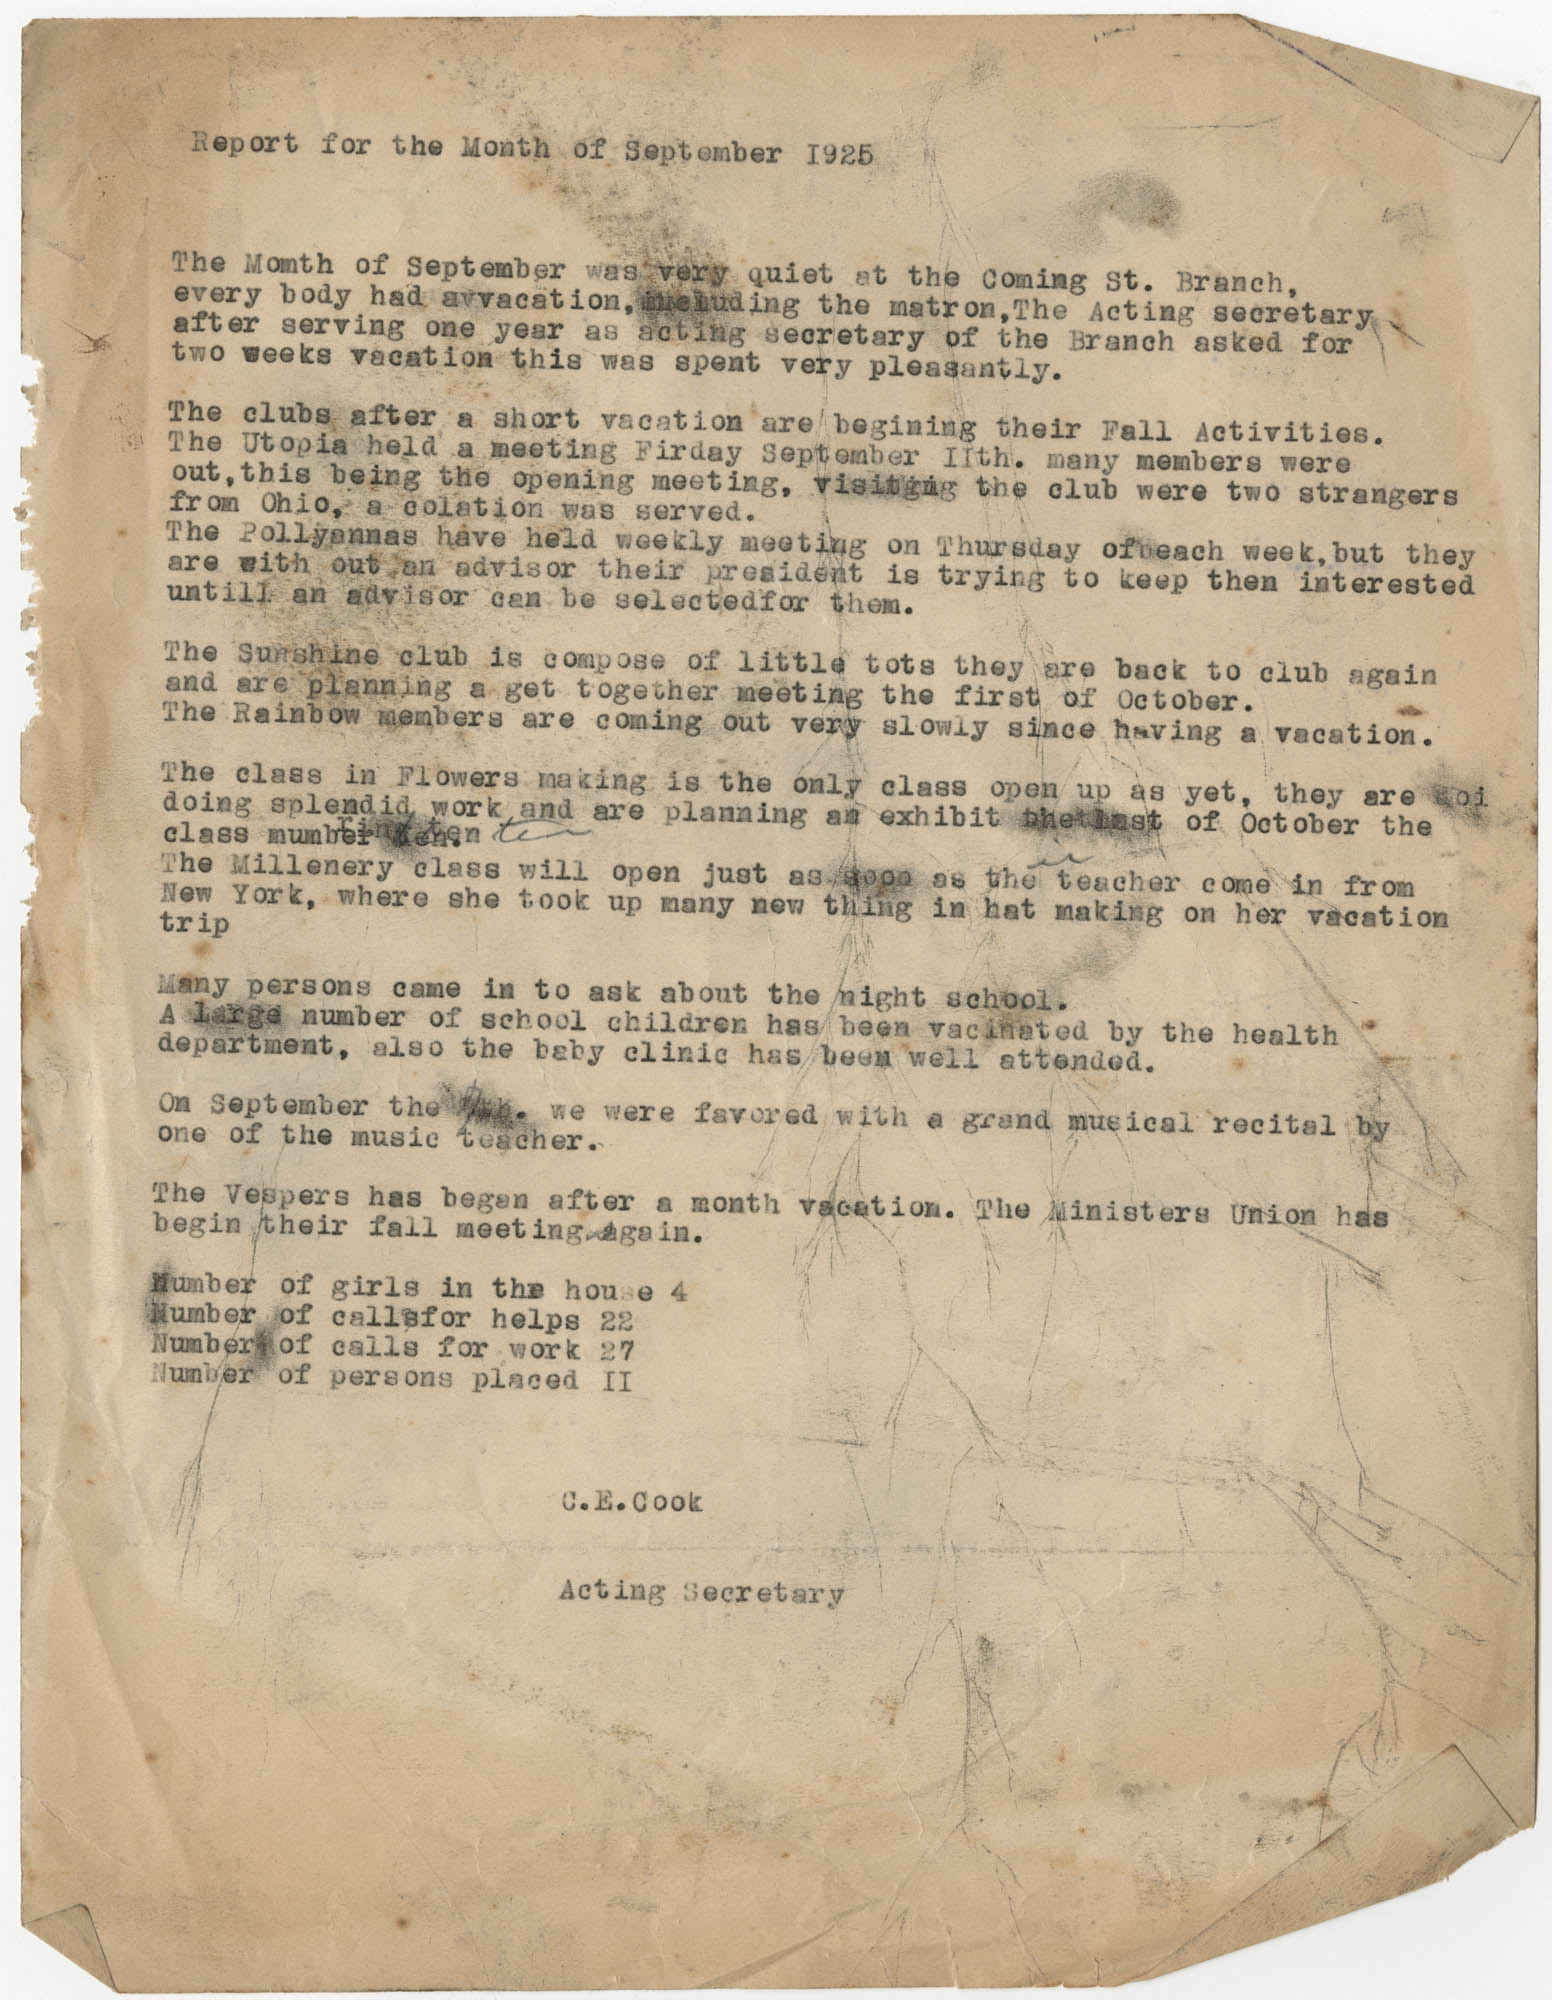 Monthly Report for the Coming Street Y.W.C.A., September 1925